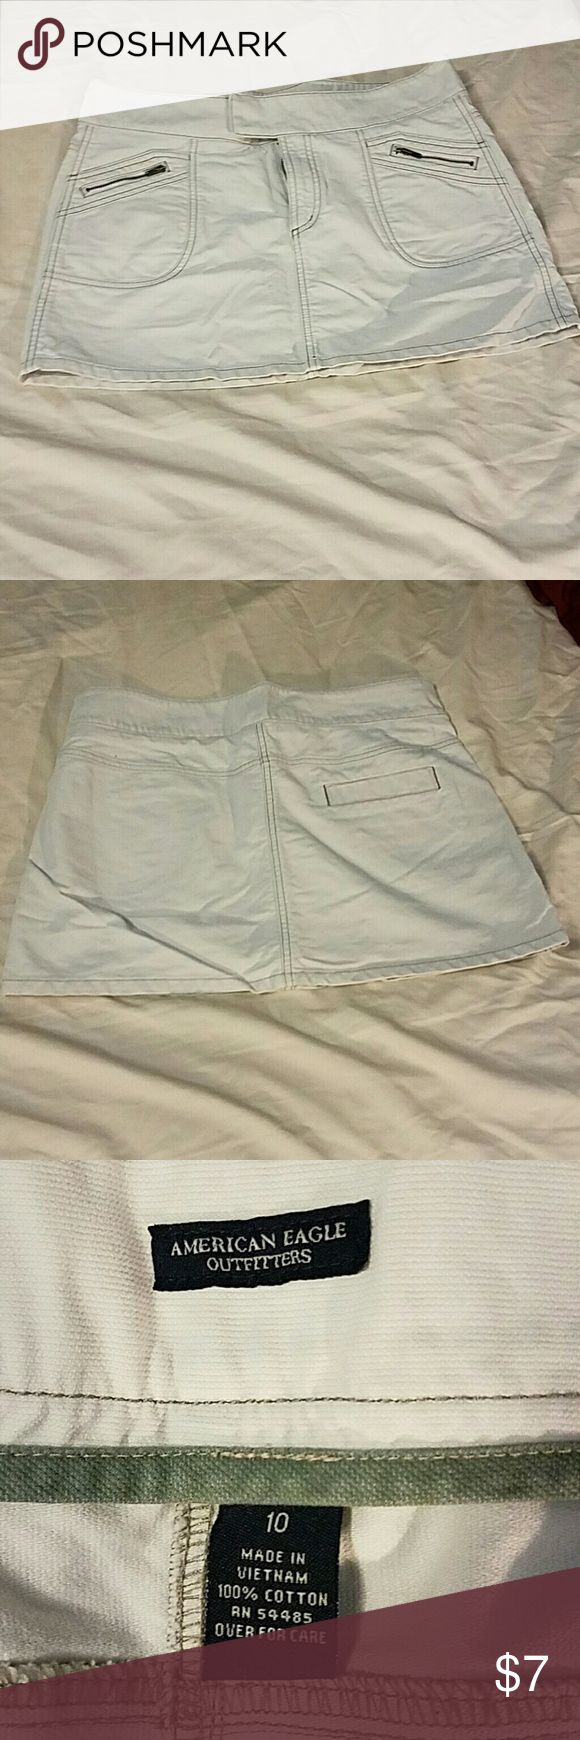 American Eagle Outfitters Khaki Skirt American Eagle Outfitters Khaki Skirt. Size 10. Like new. American Eagle Outfitters Jeans